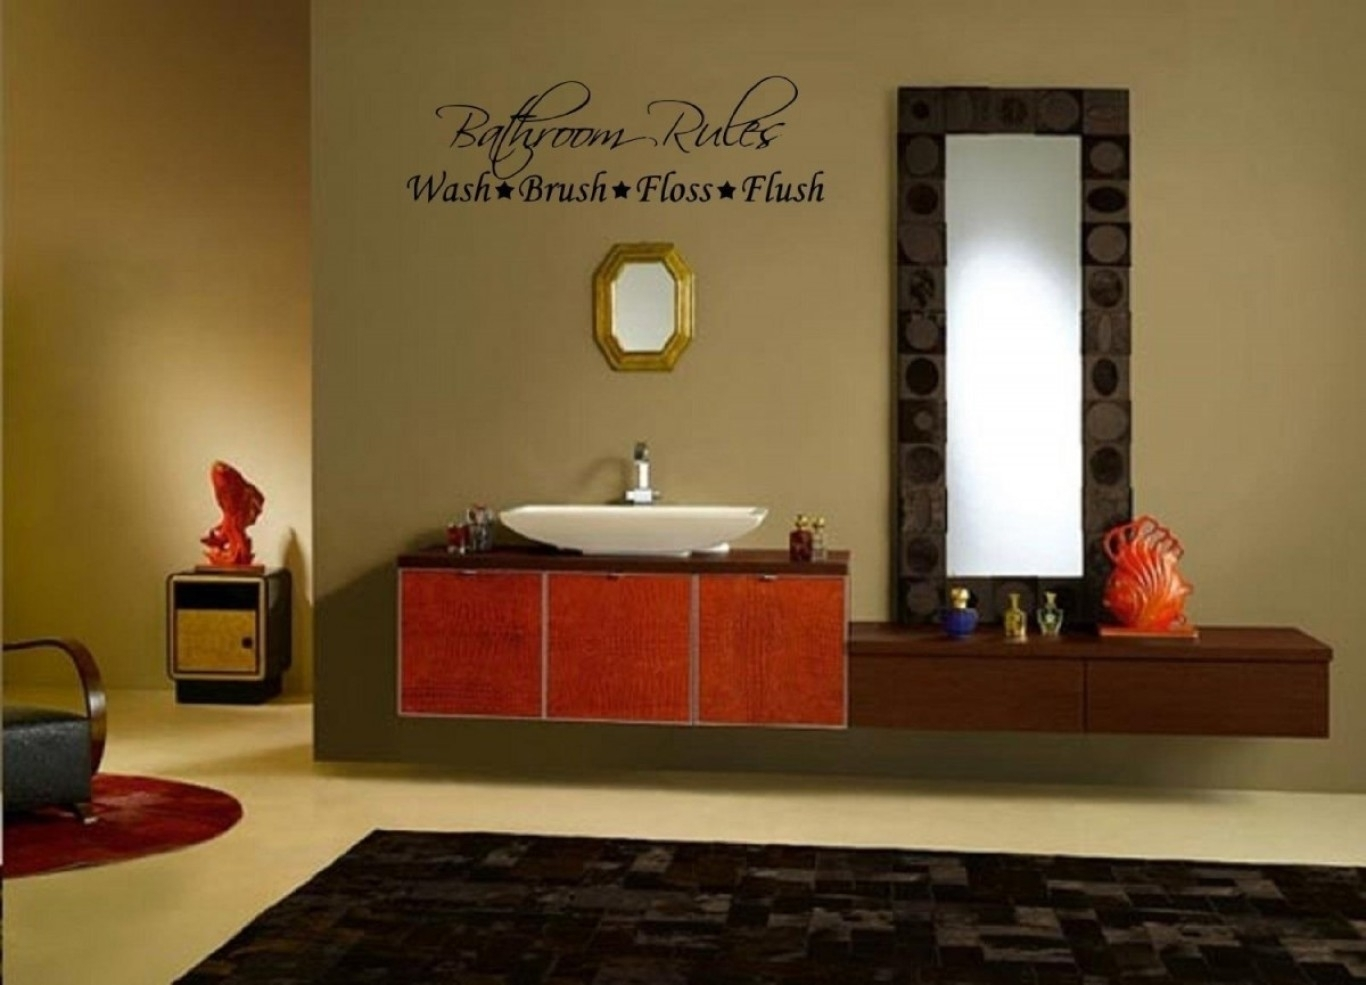 Bathroom Wall Decor With Regard To 2018 Wall Accents For Bathroom (View 15 of 15)